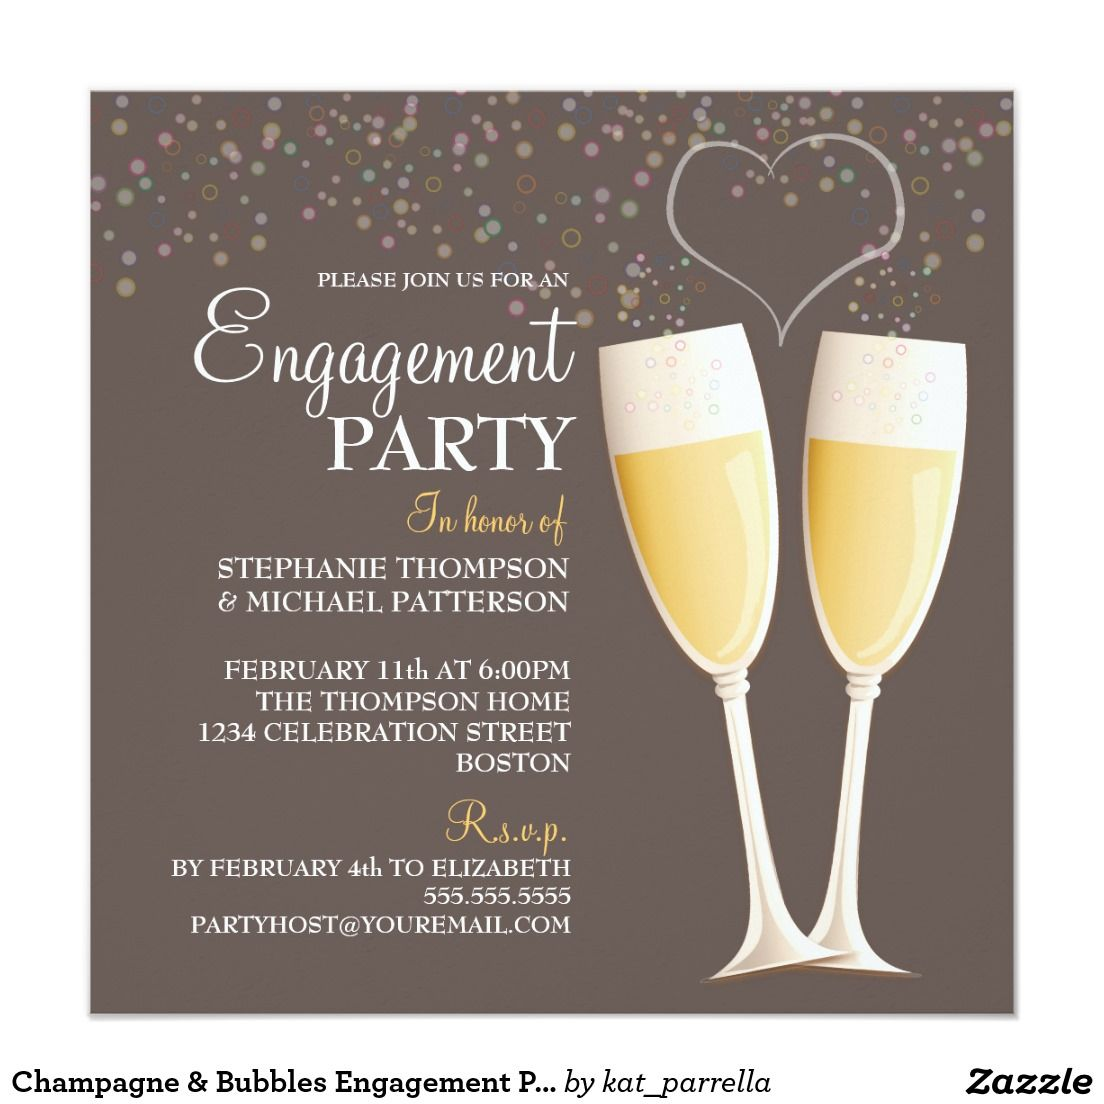 Champagne & Bubbles Engagement Party Invitation   Wedding ...